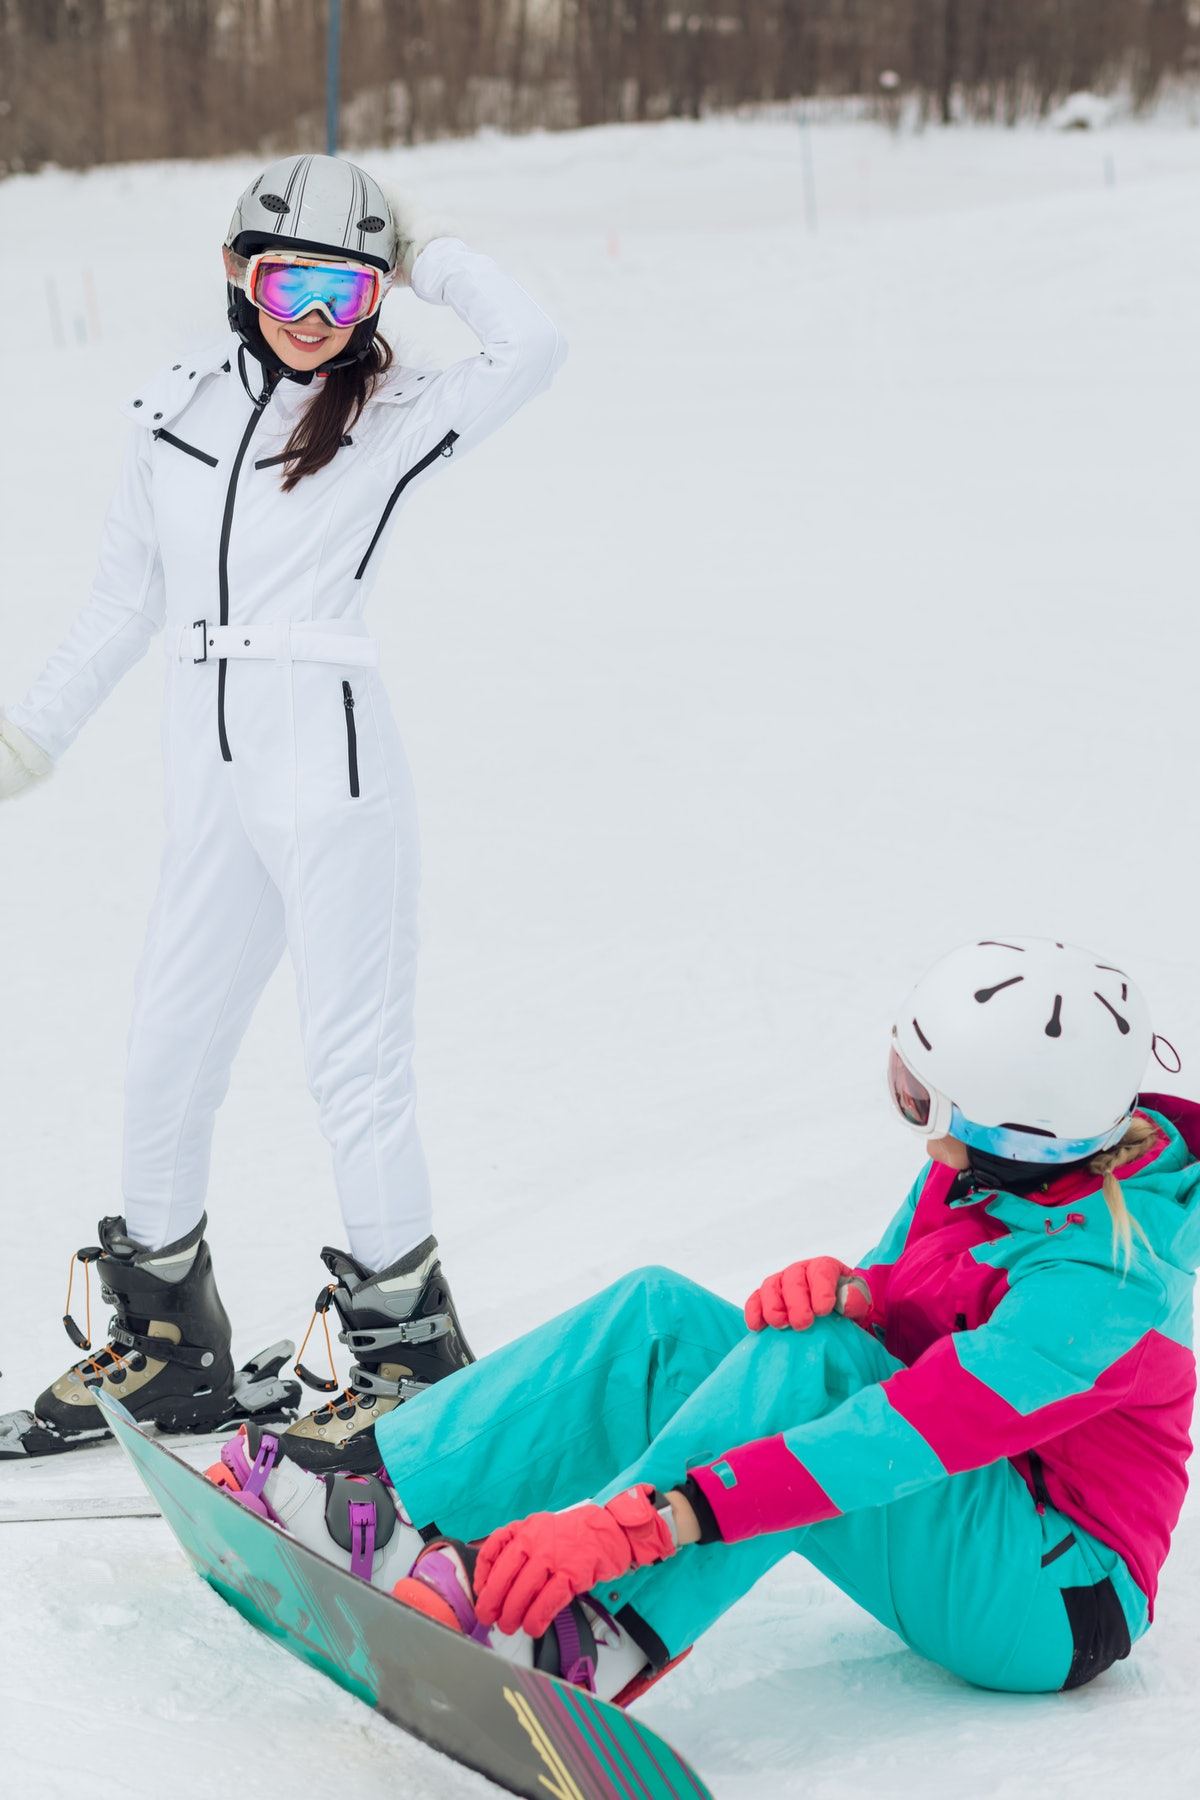 An athletic couple shares a moment while skiing and snowboarding on a snowy mountain.